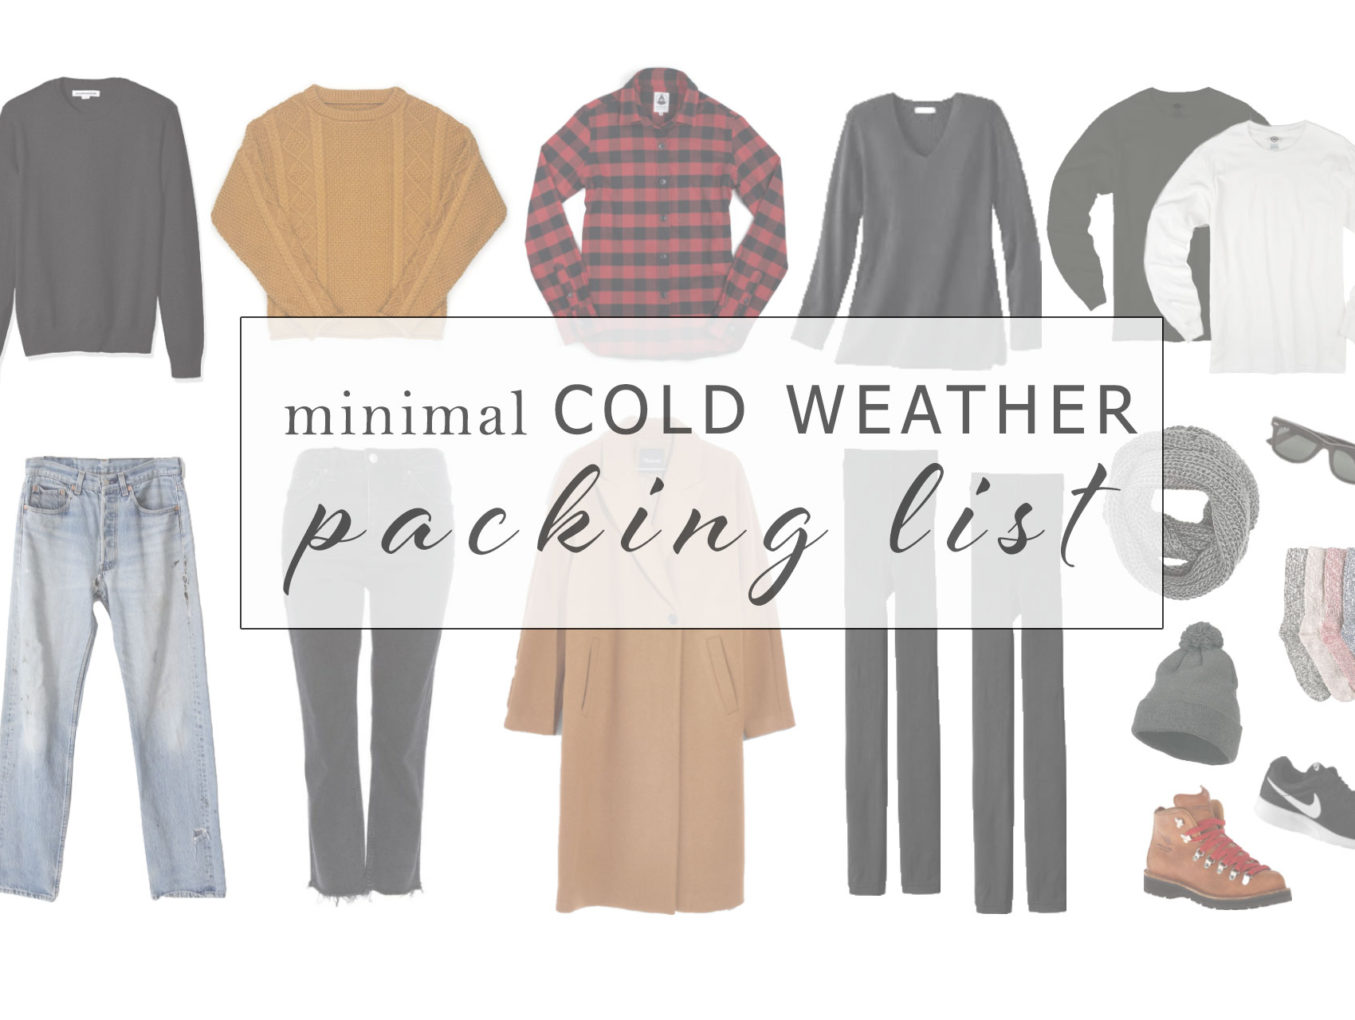 Minimal Cold Weather Packing List